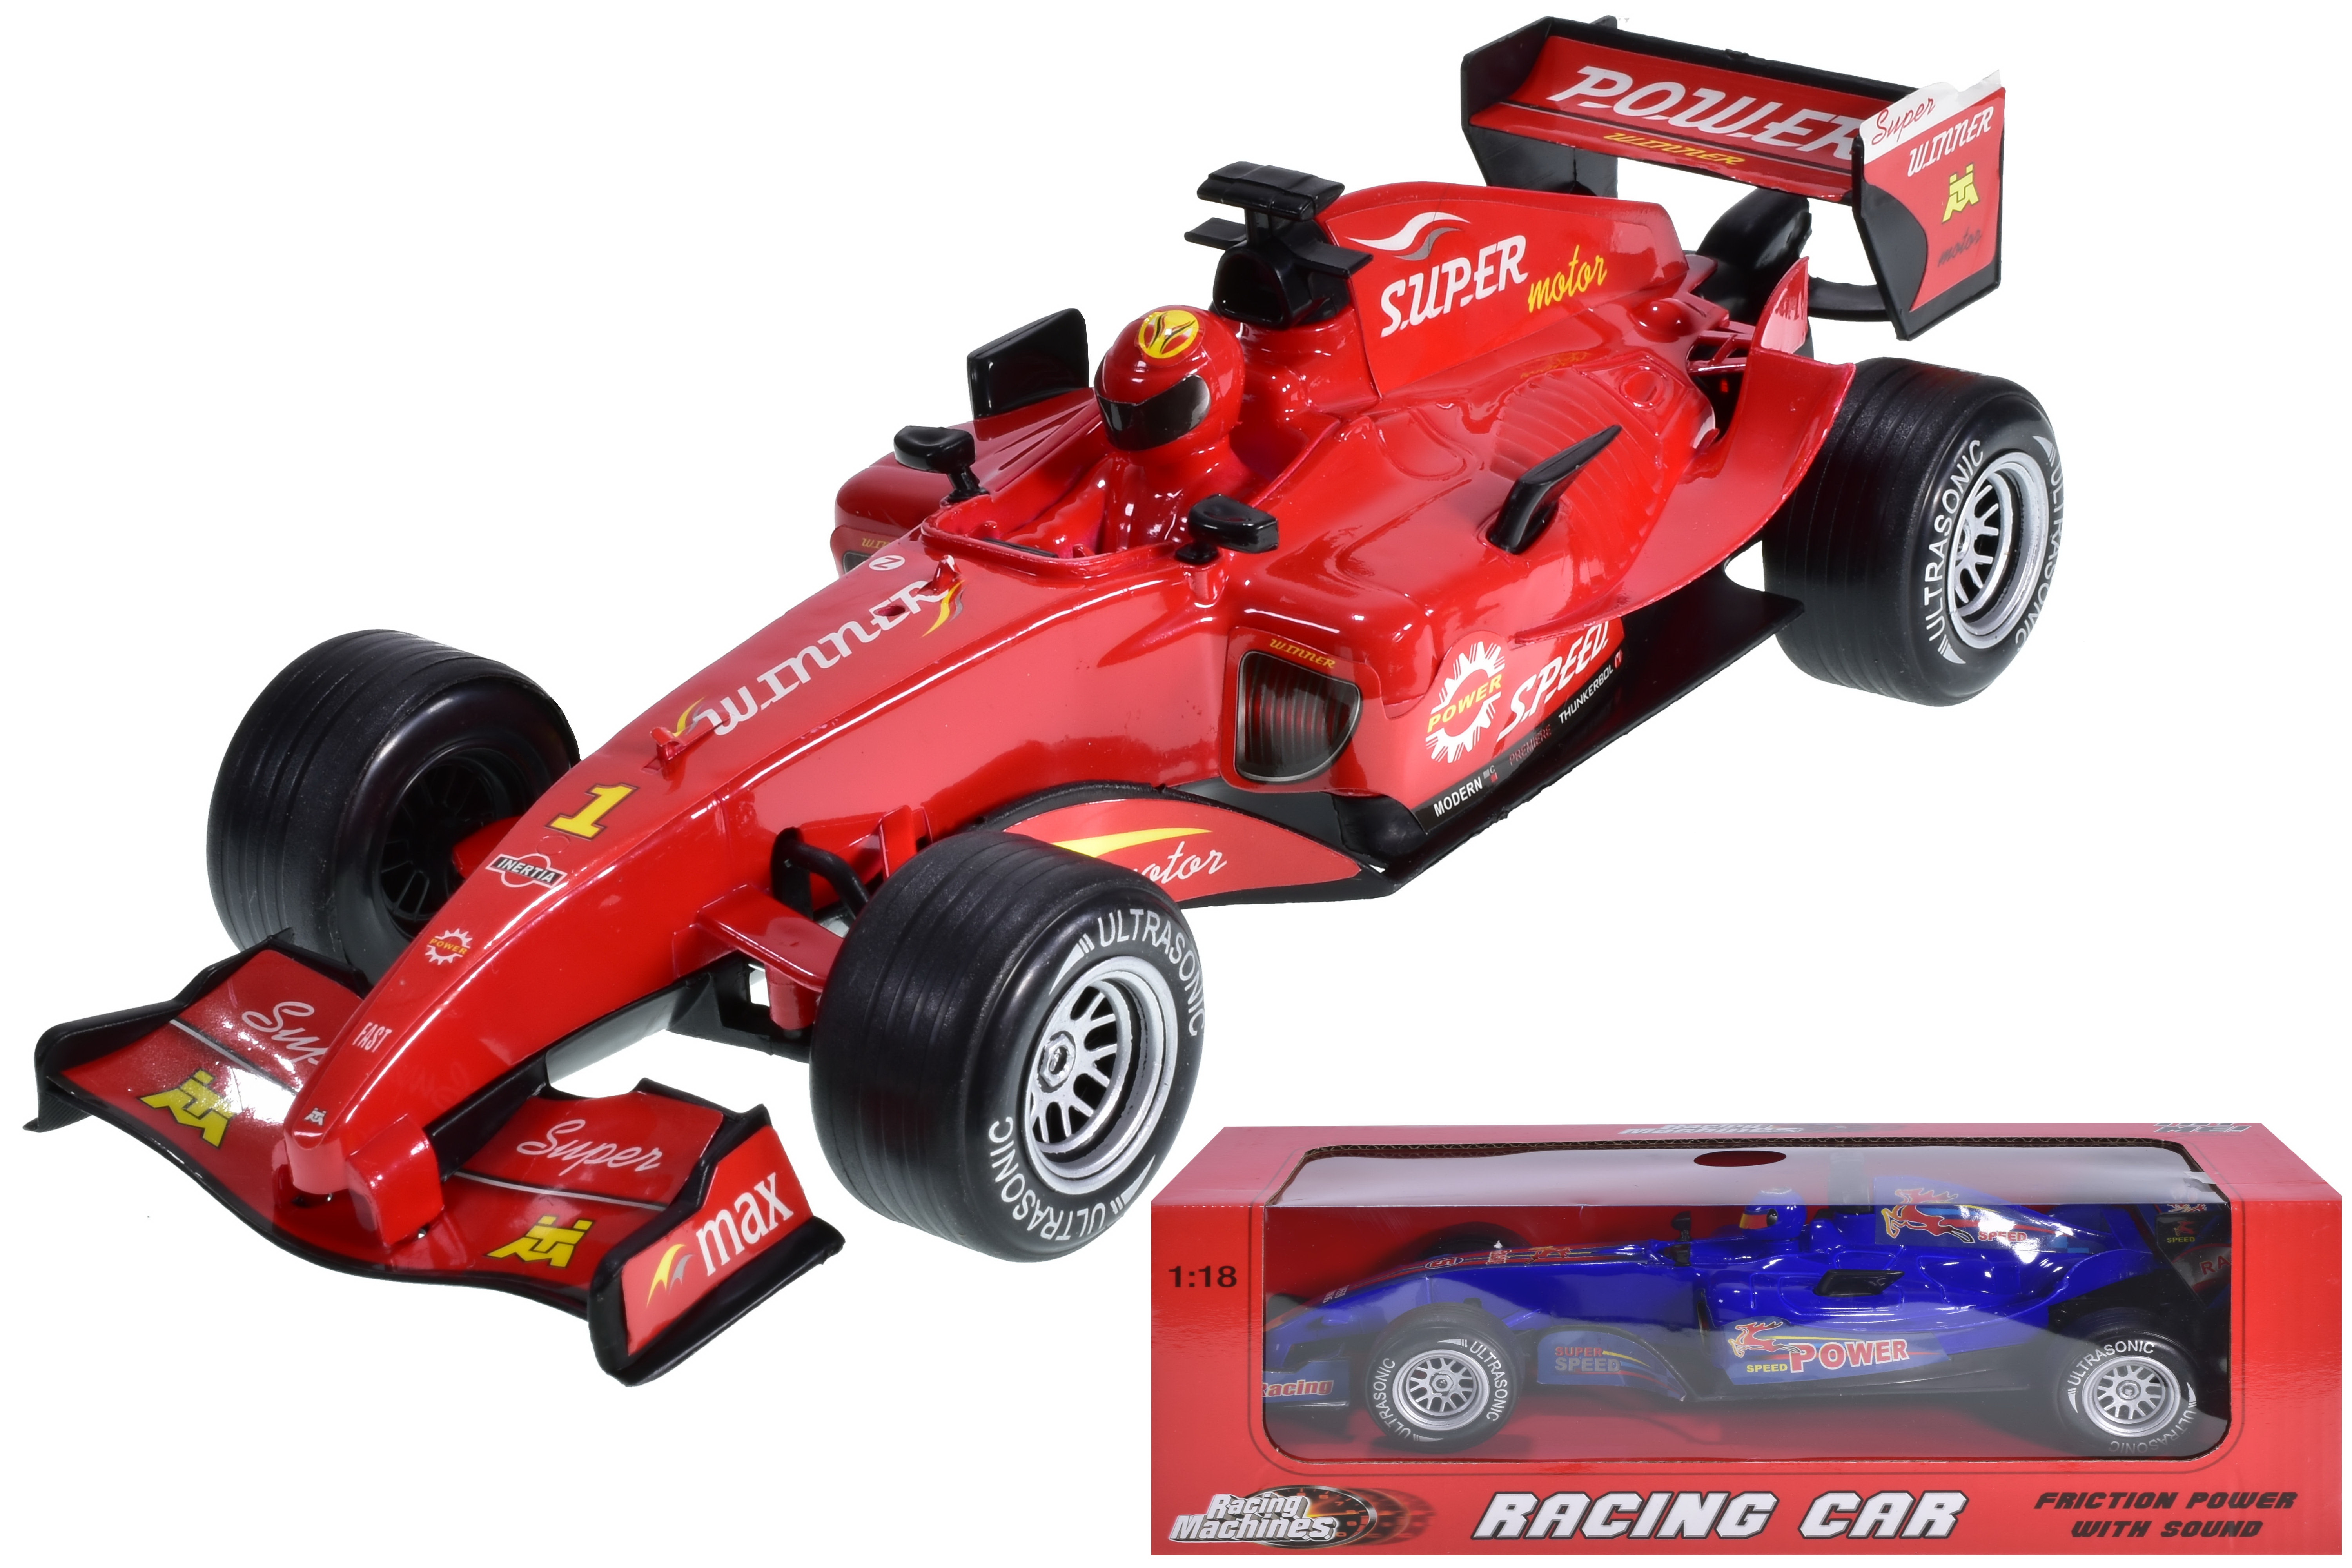 1:18sc Plastic Racing Car With Sound 2 Assorted In Wbx